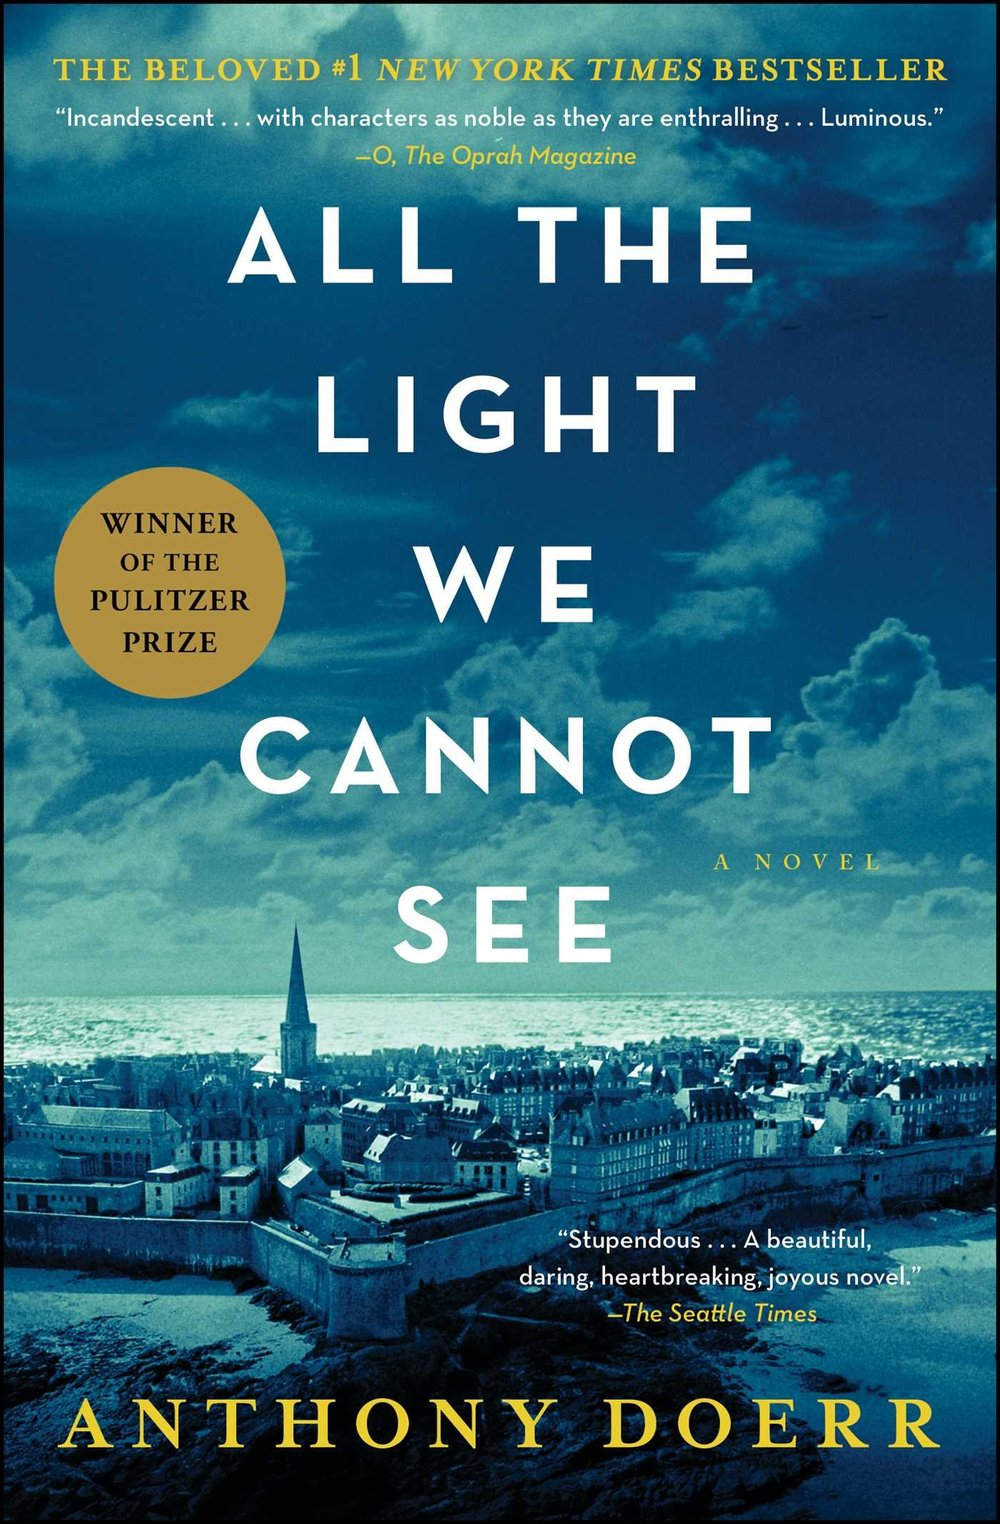 All the Light We Cannot See - by Anthony Doerr